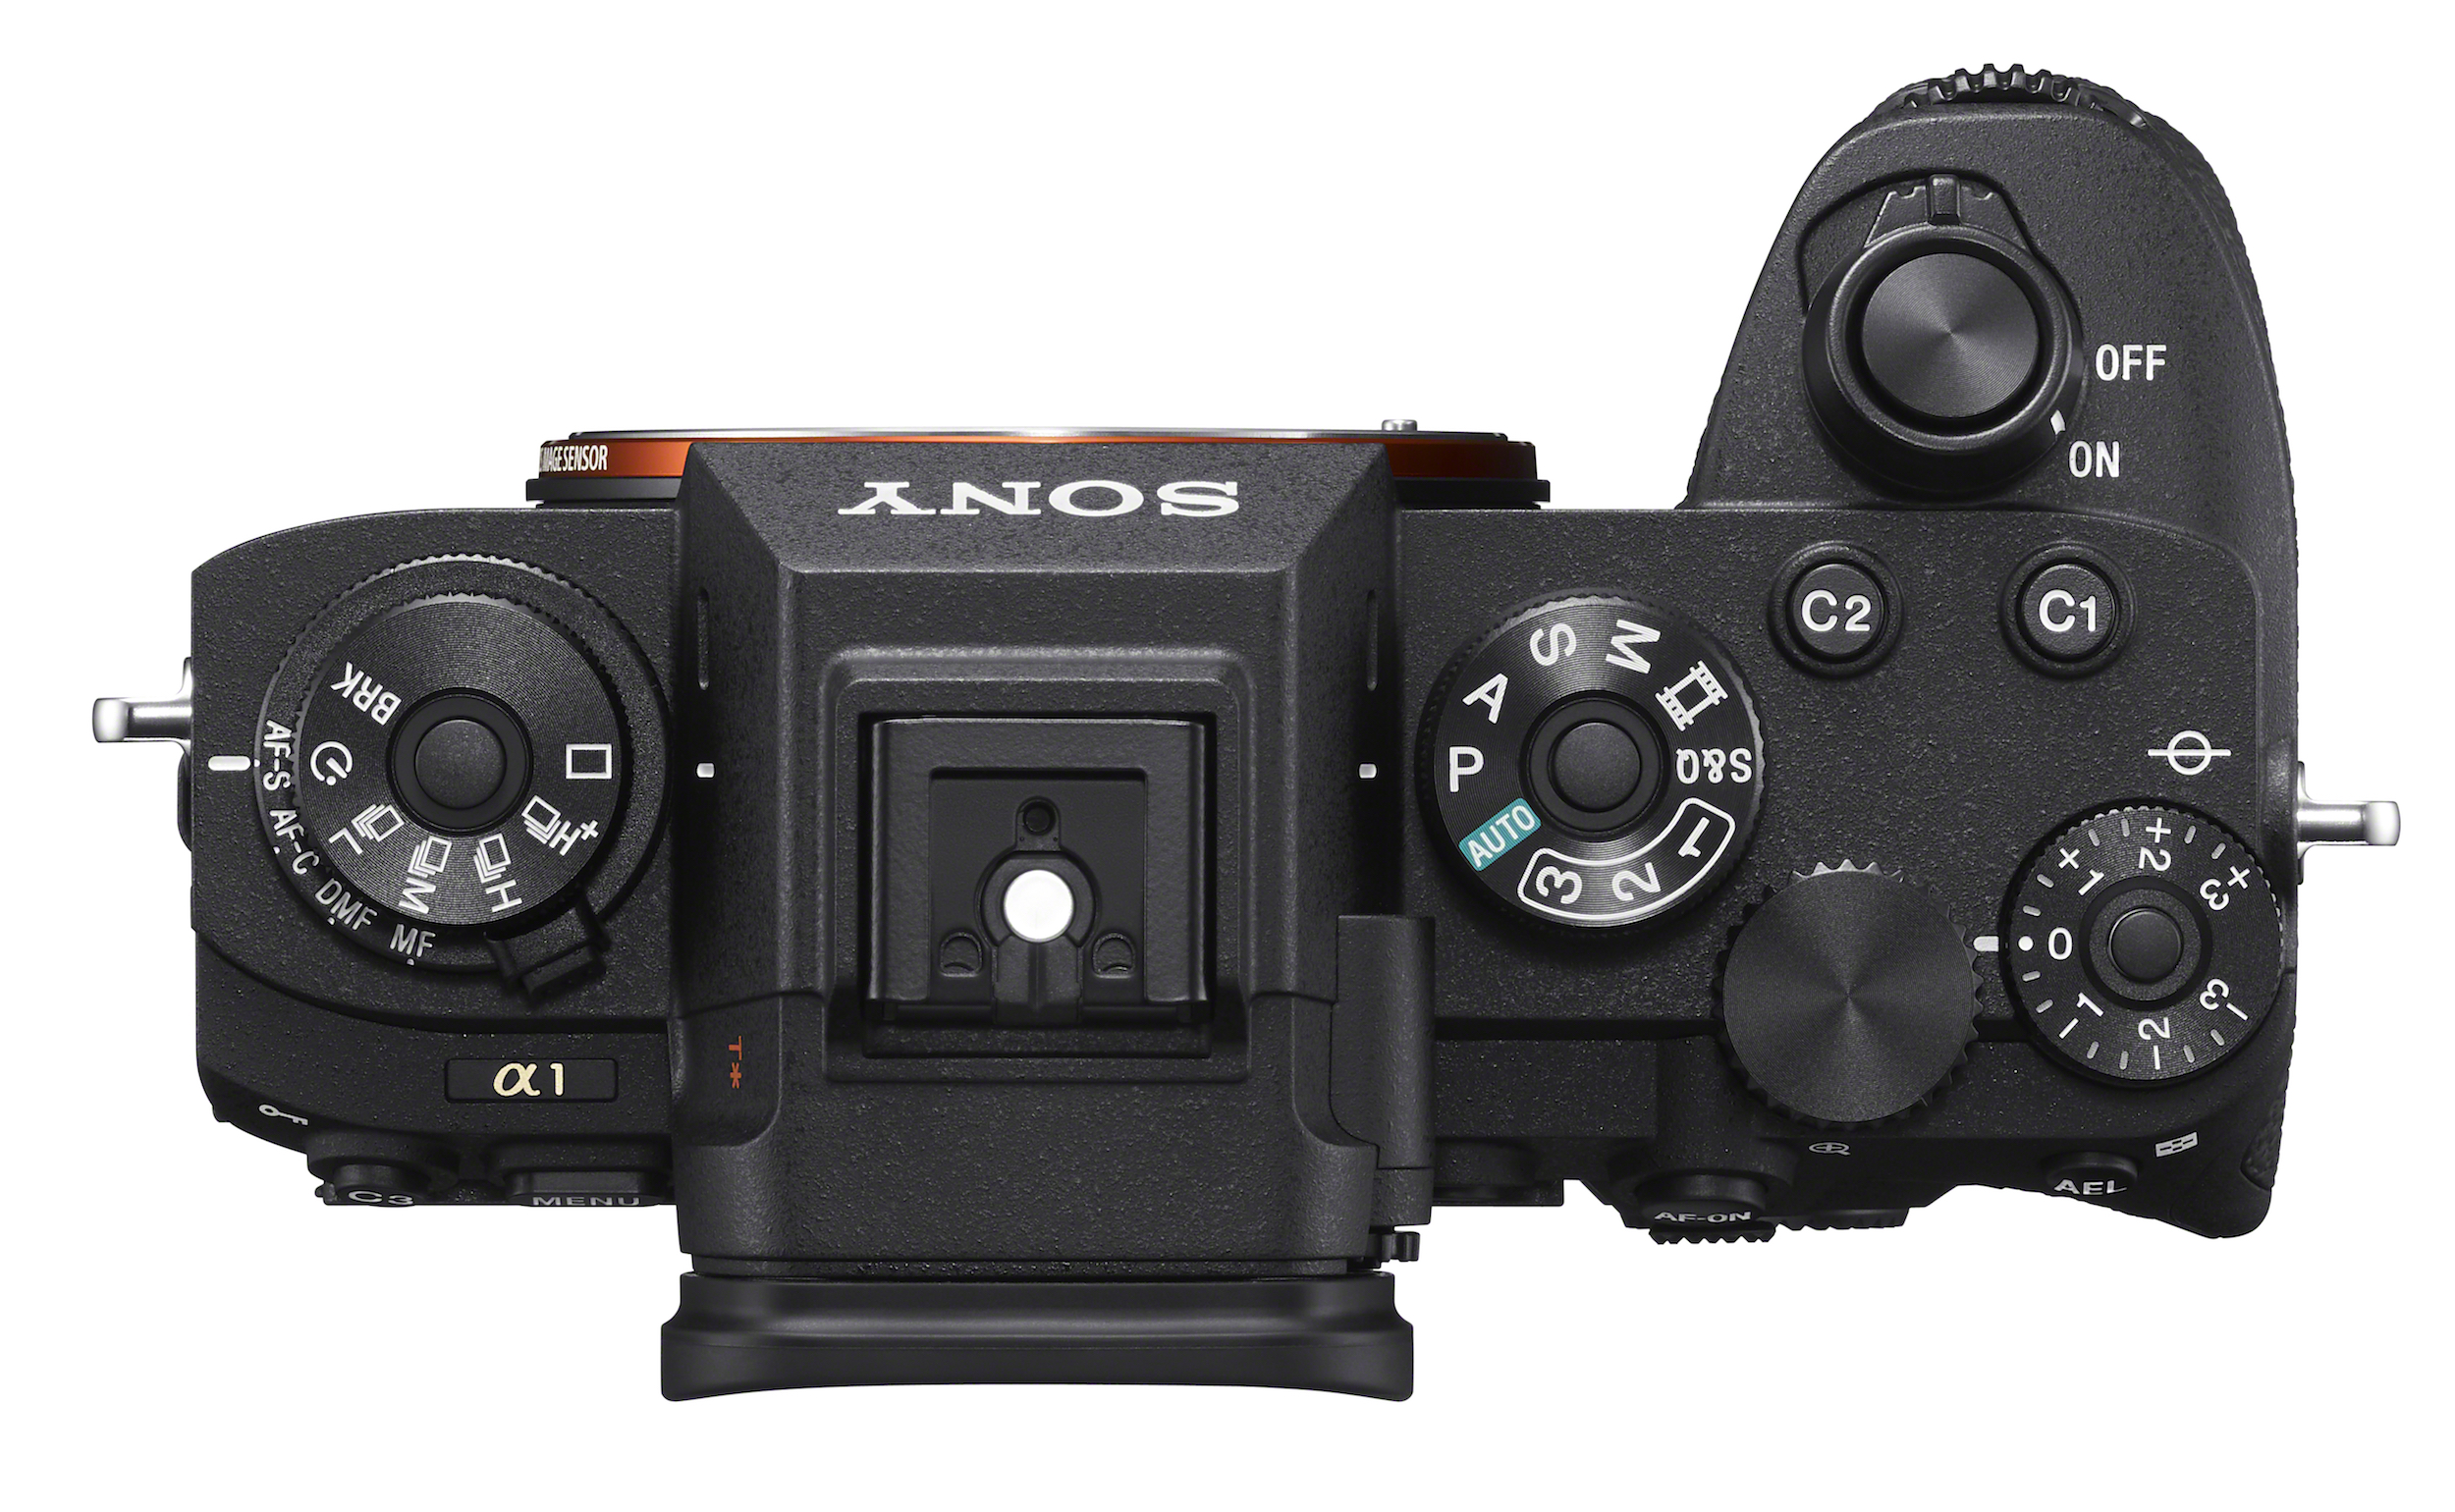 Top view of the Sony Alpha 1 camera showing its controls.